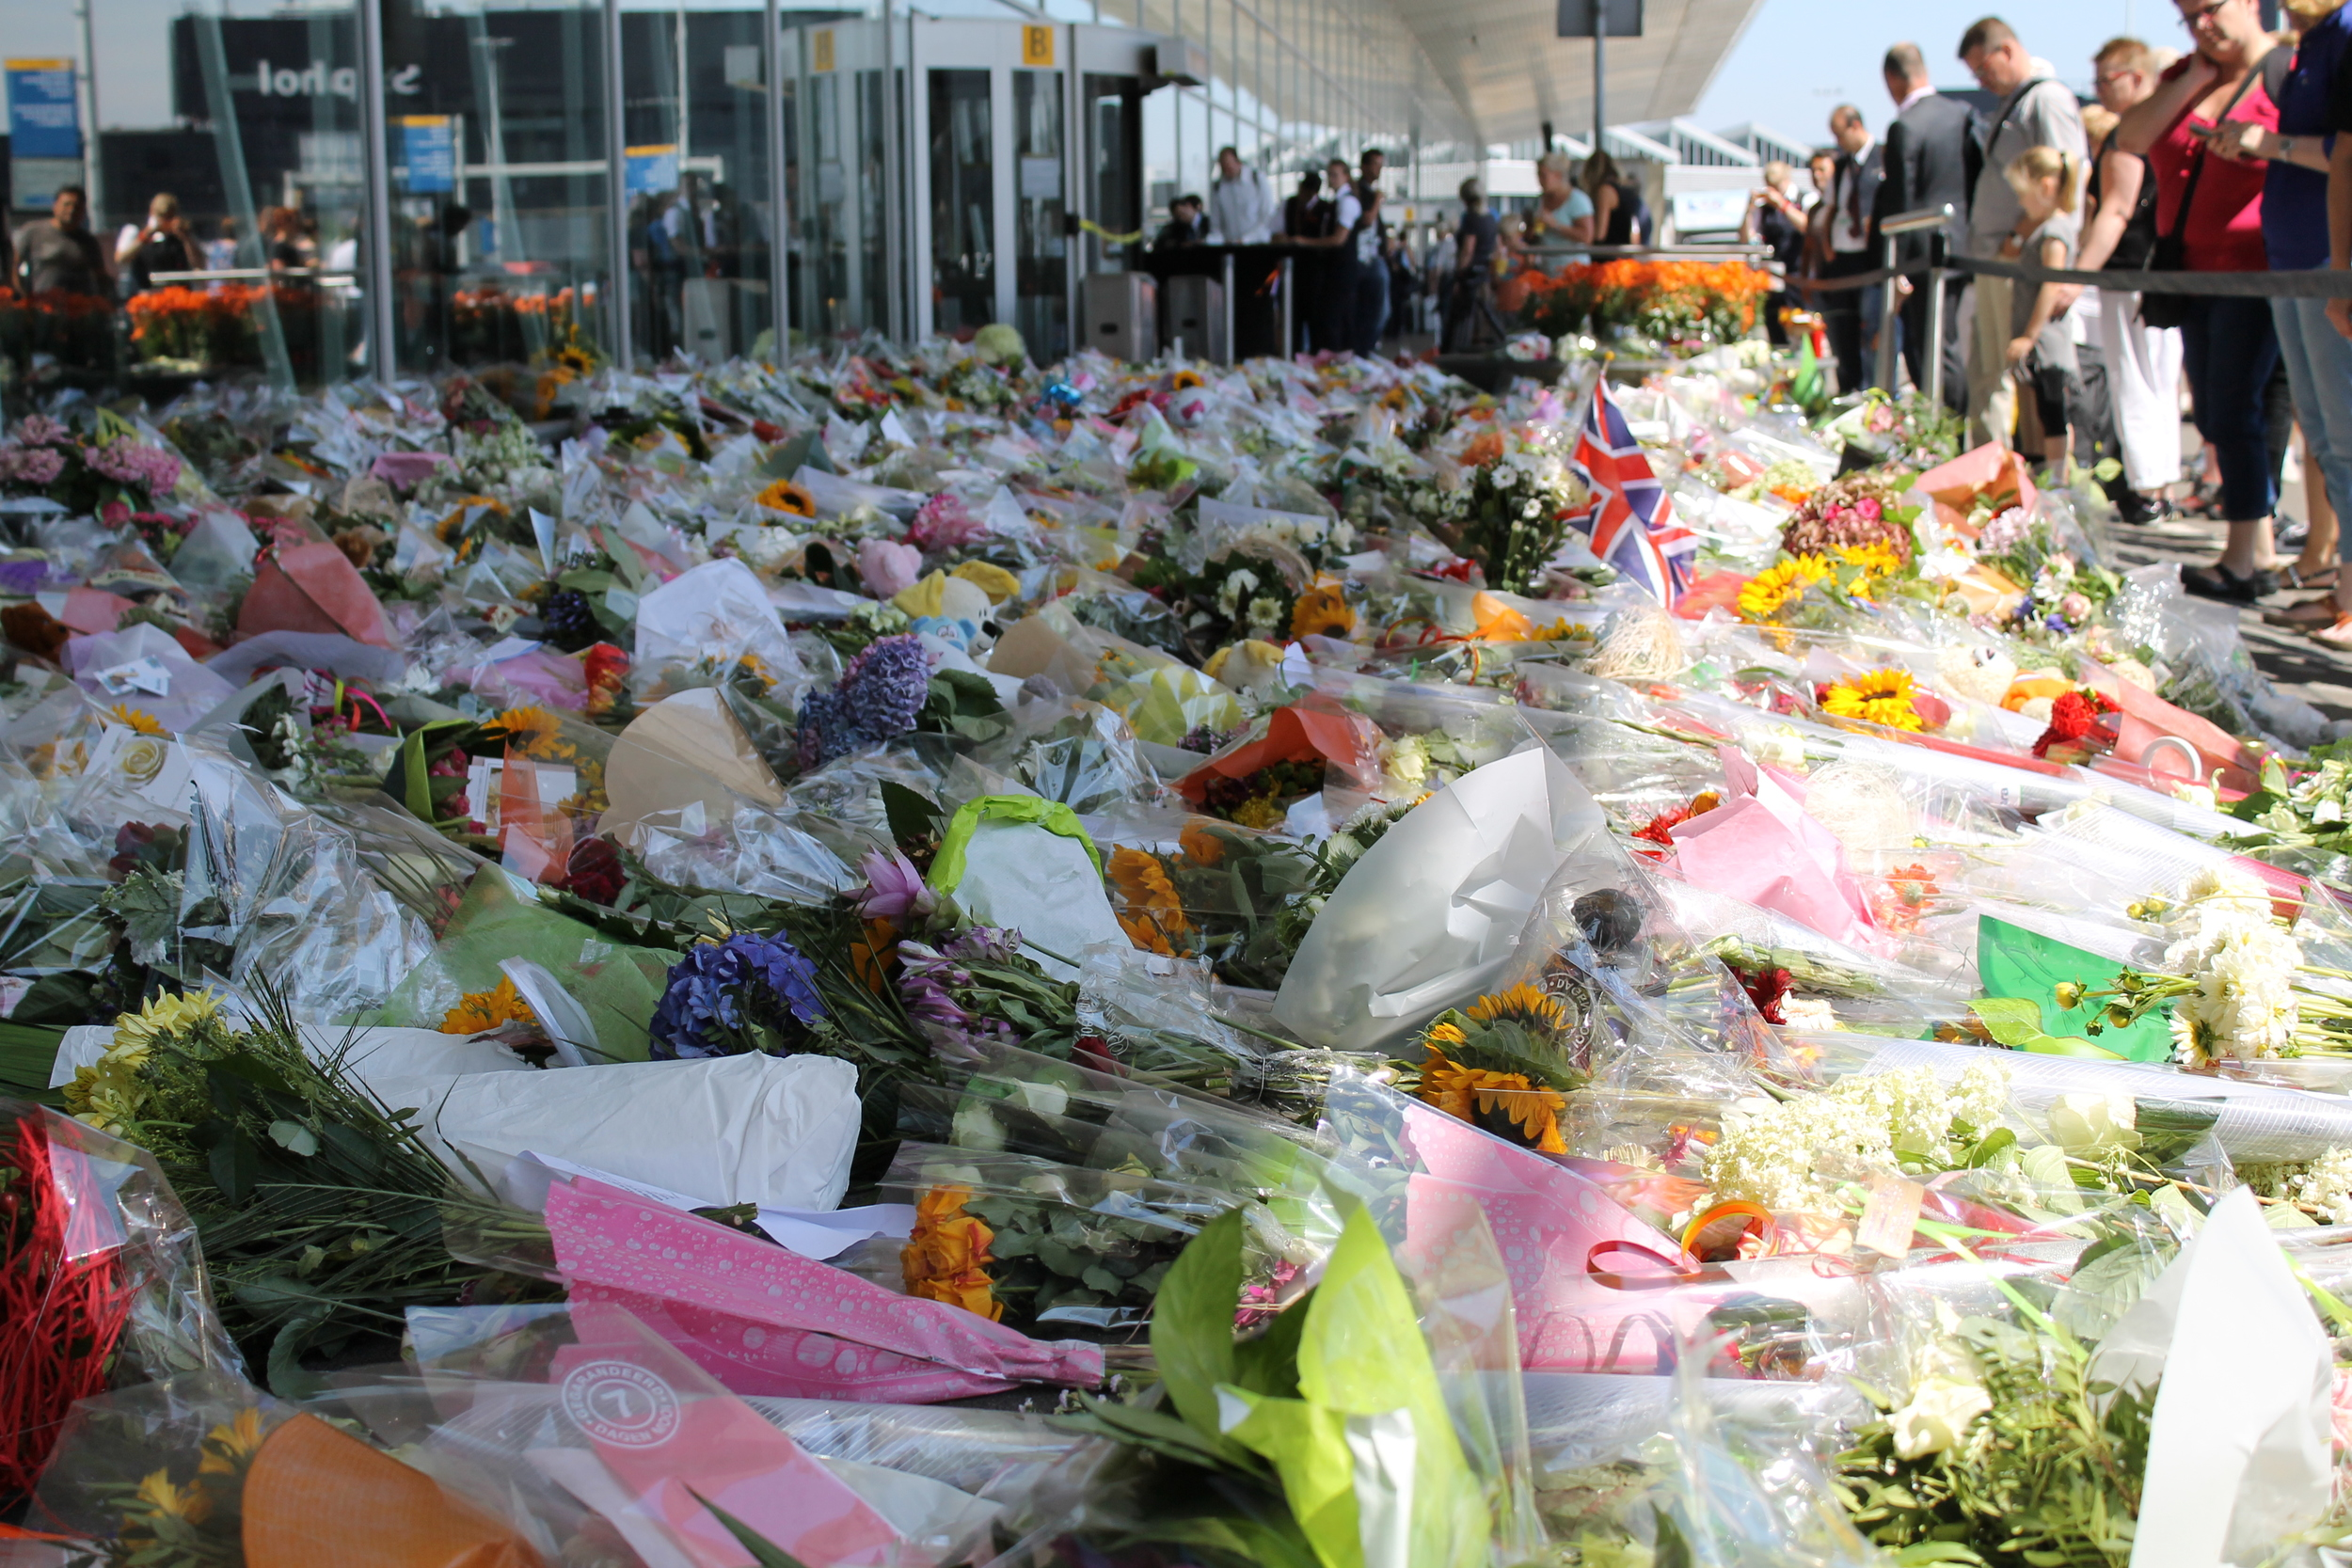 Flowers at Schiphol airport in memory of the victims.Photo by  Javier Santos .